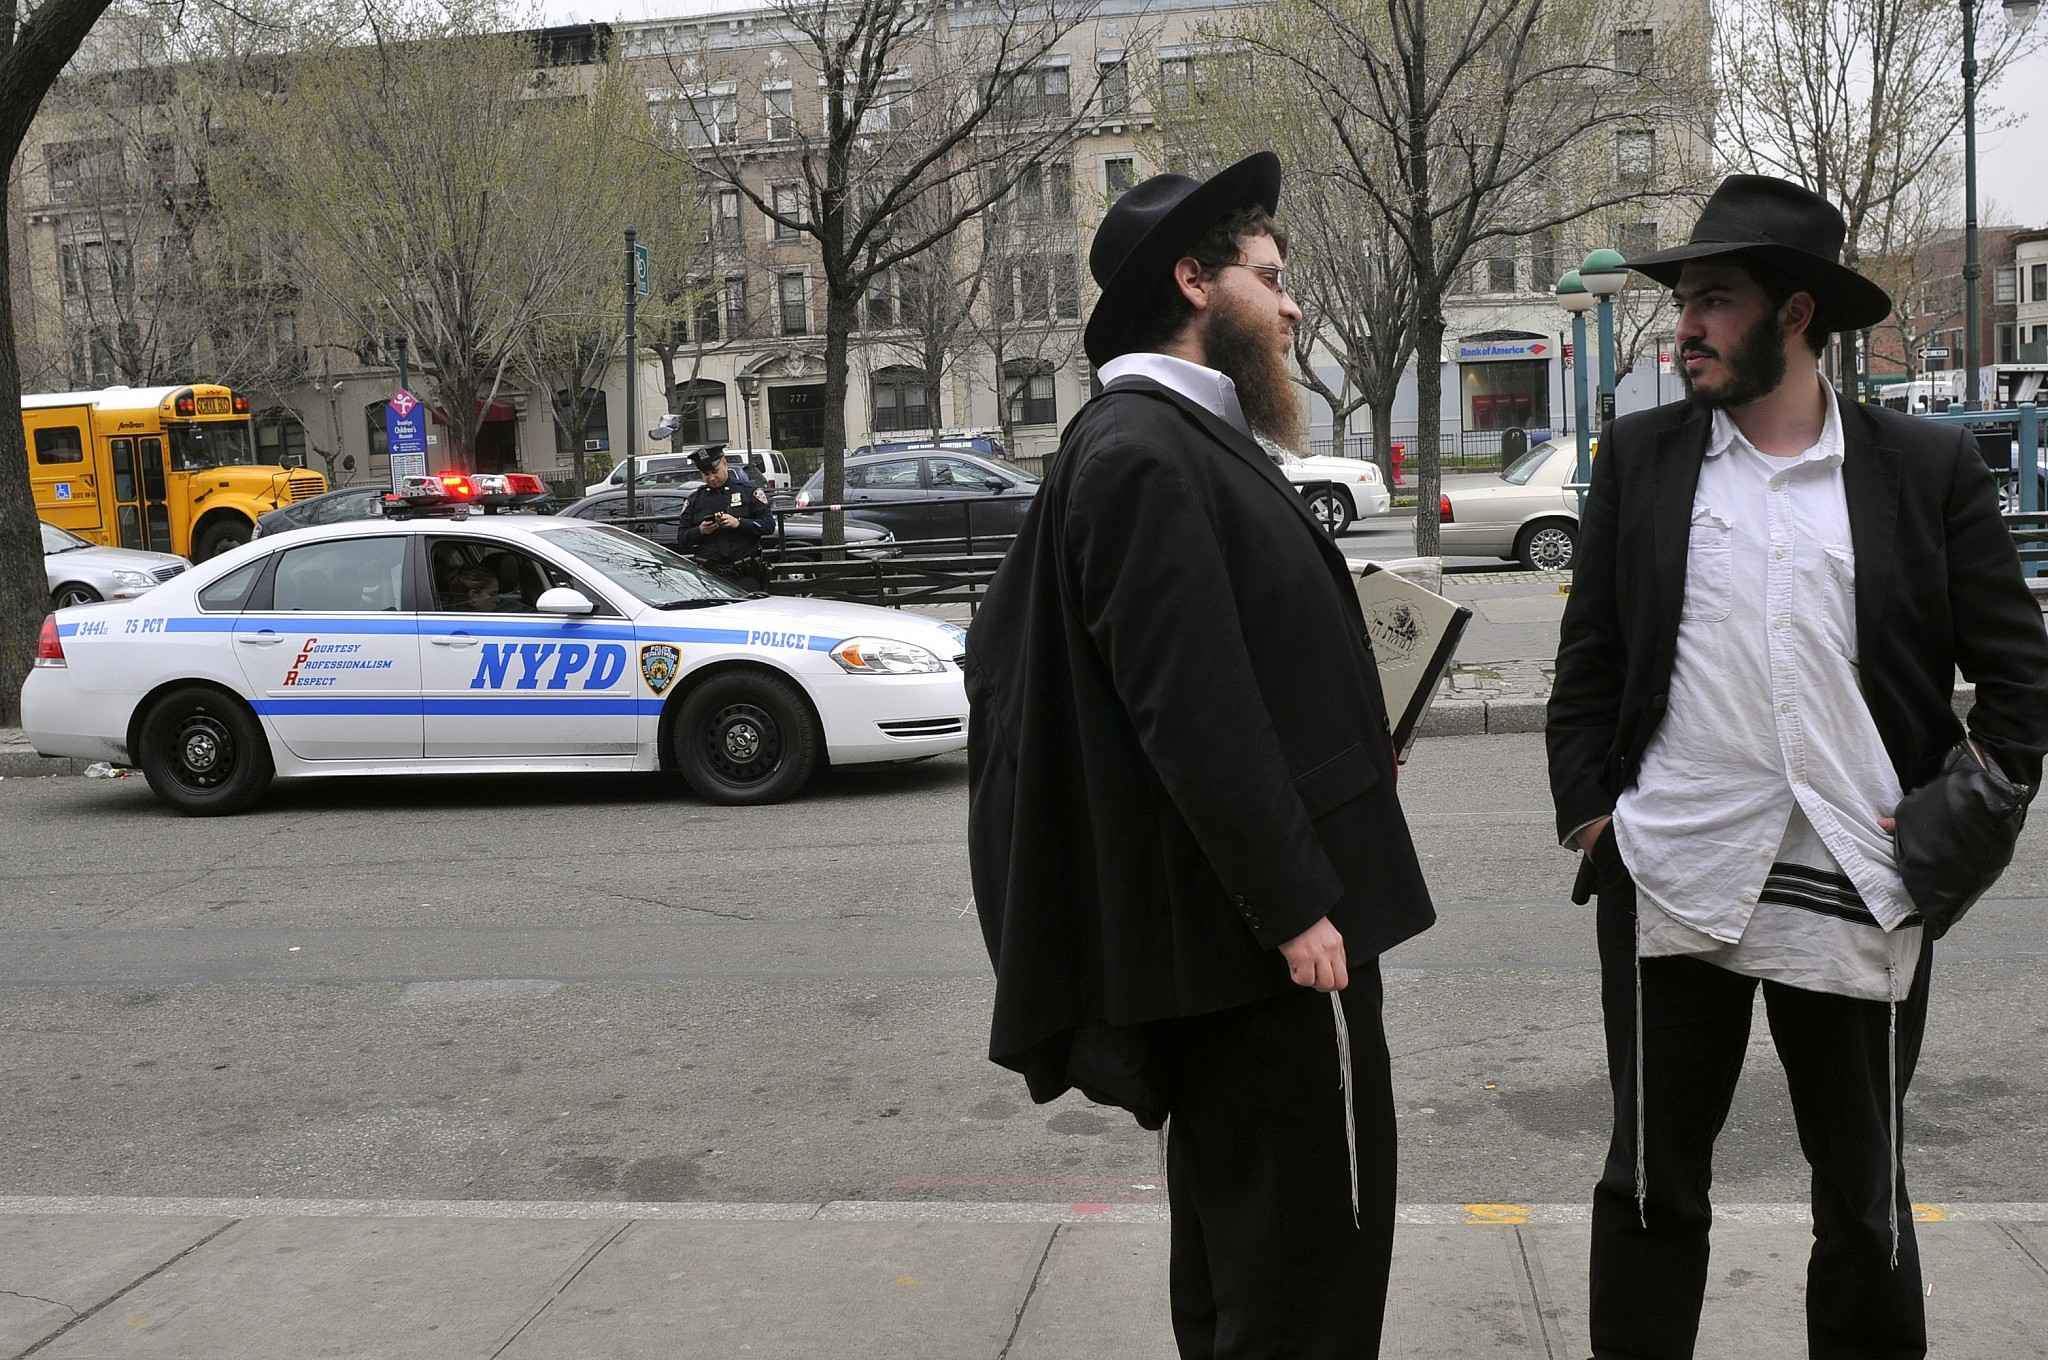 Jewish man attacked in Crown Heights after Shabbat services